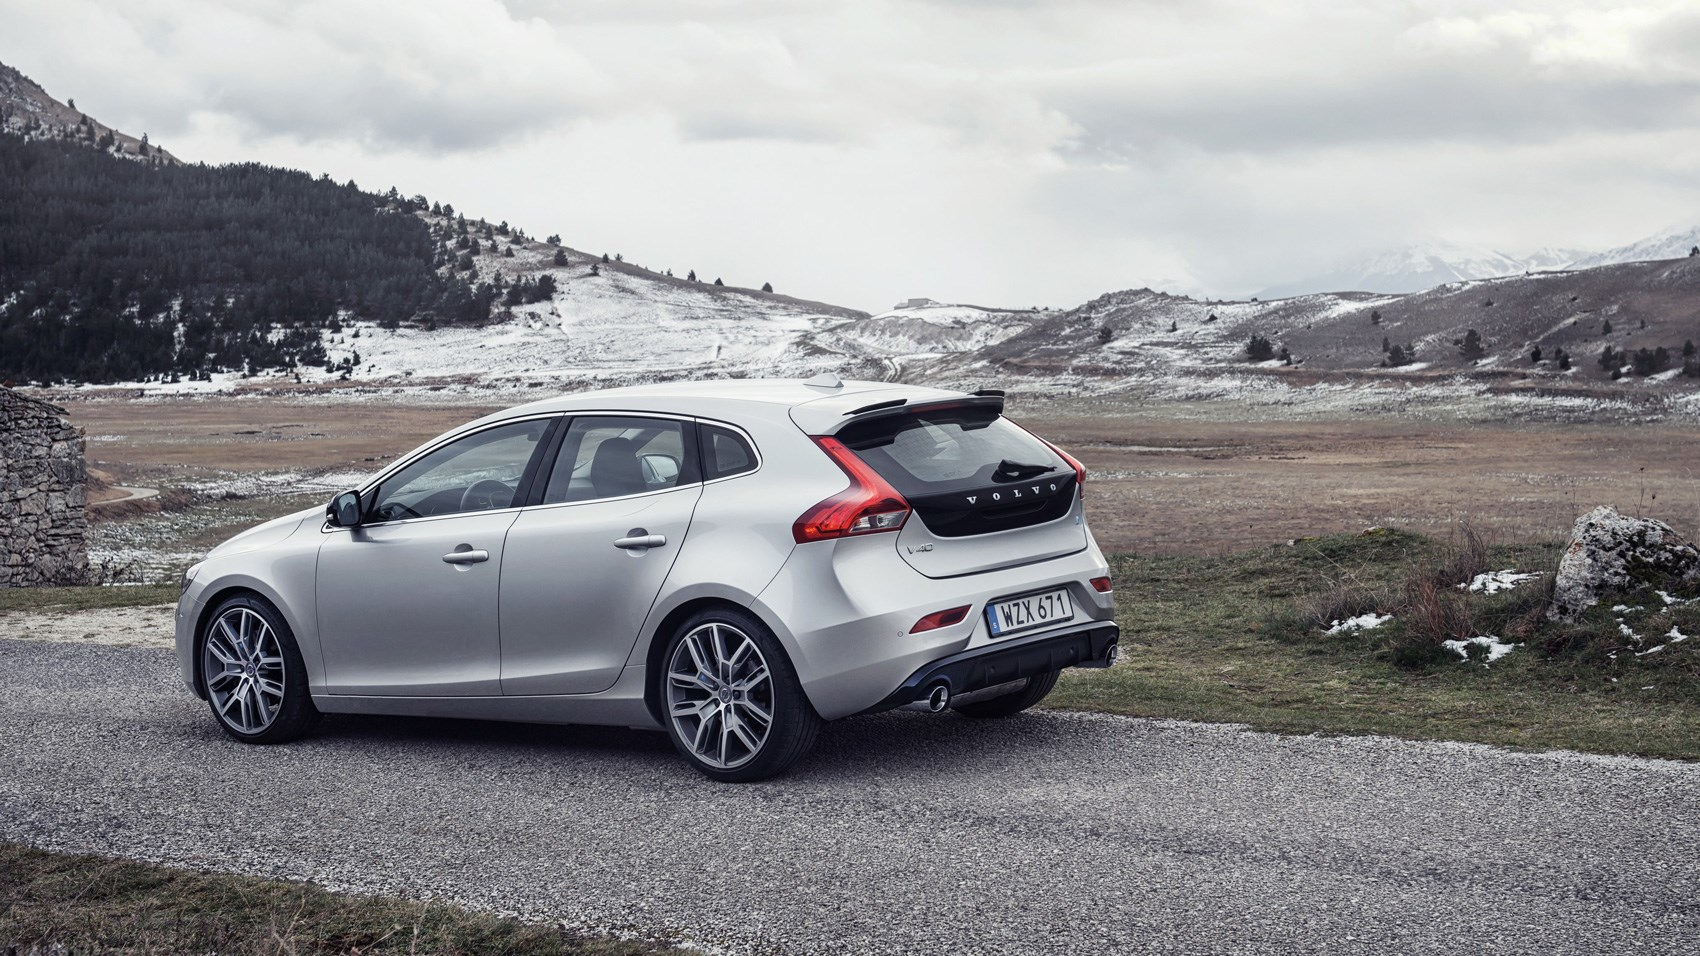 volvo v40 t5 r design pro polestar 2017 review by car. Black Bedroom Furniture Sets. Home Design Ideas